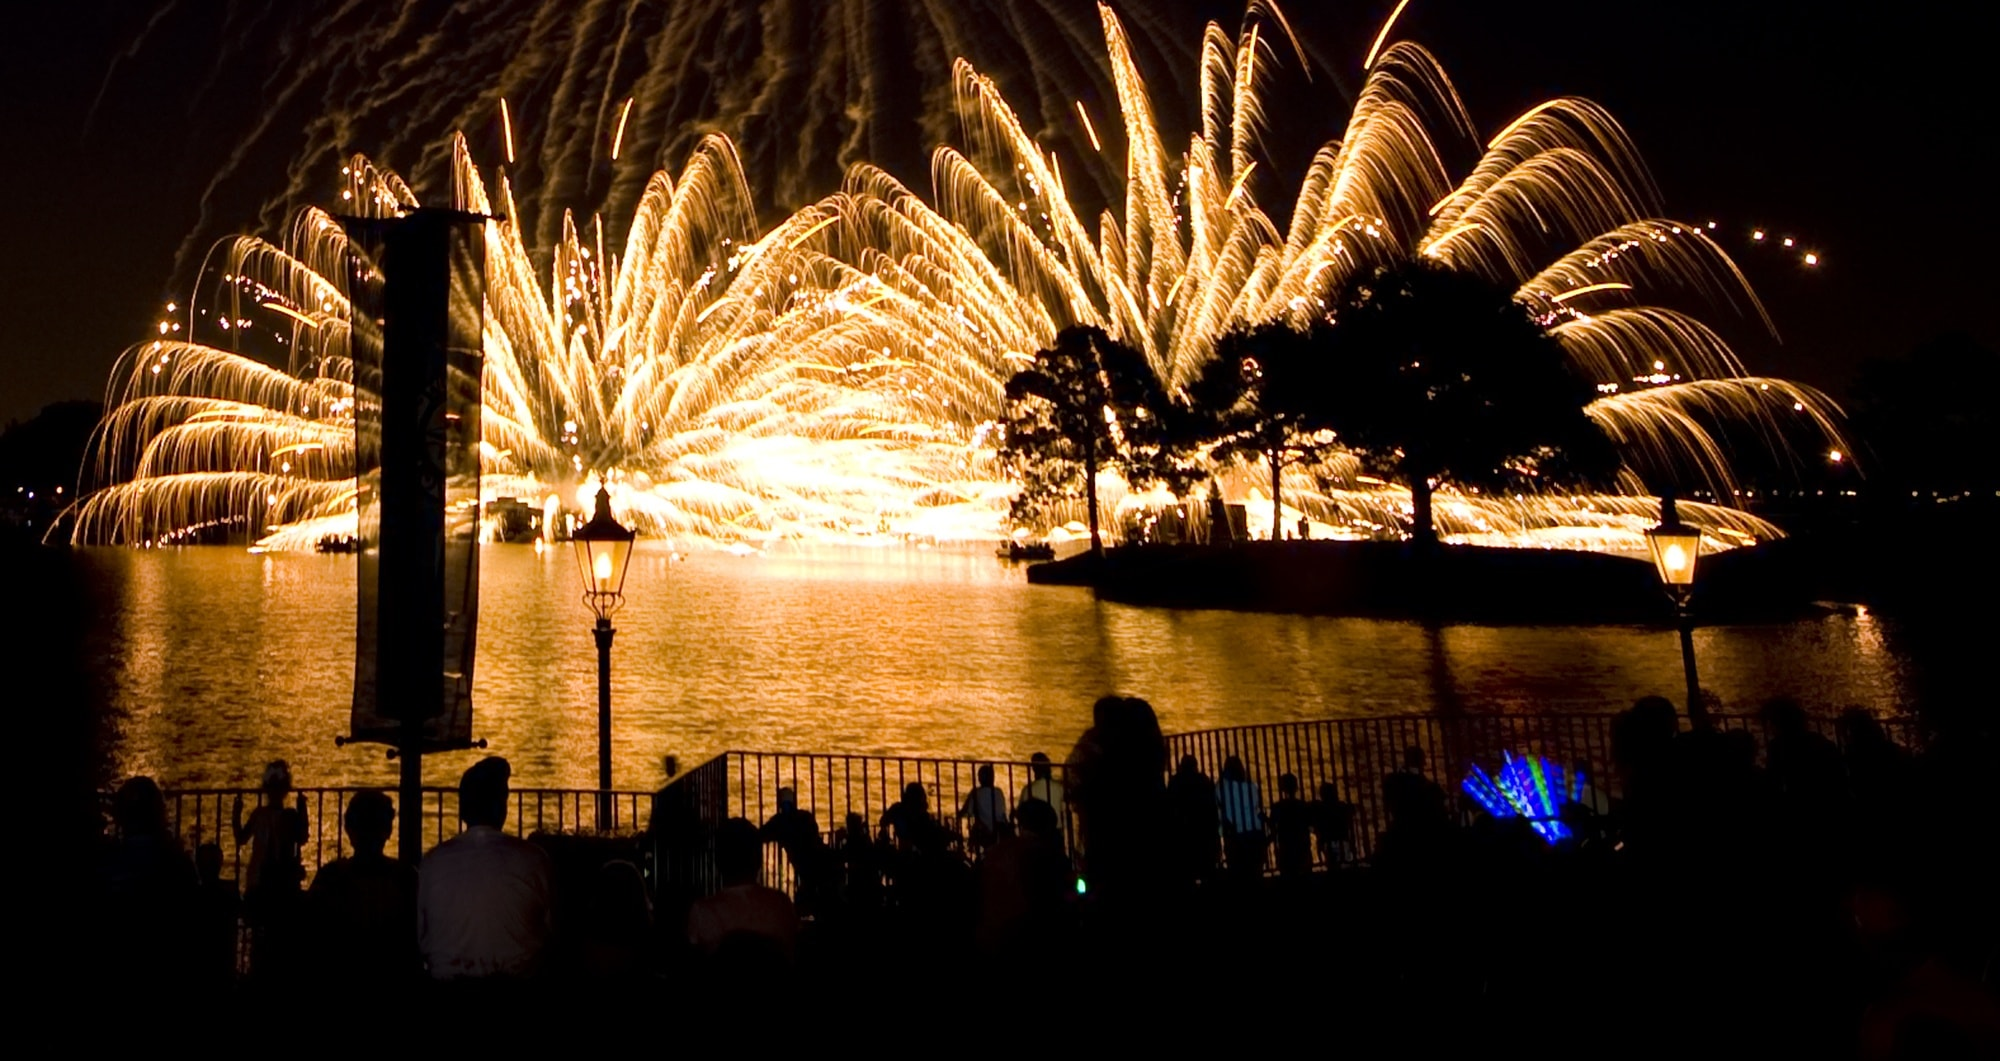 Light the Night fireworks spectacular concludes a wonderful day at Epcot with kids